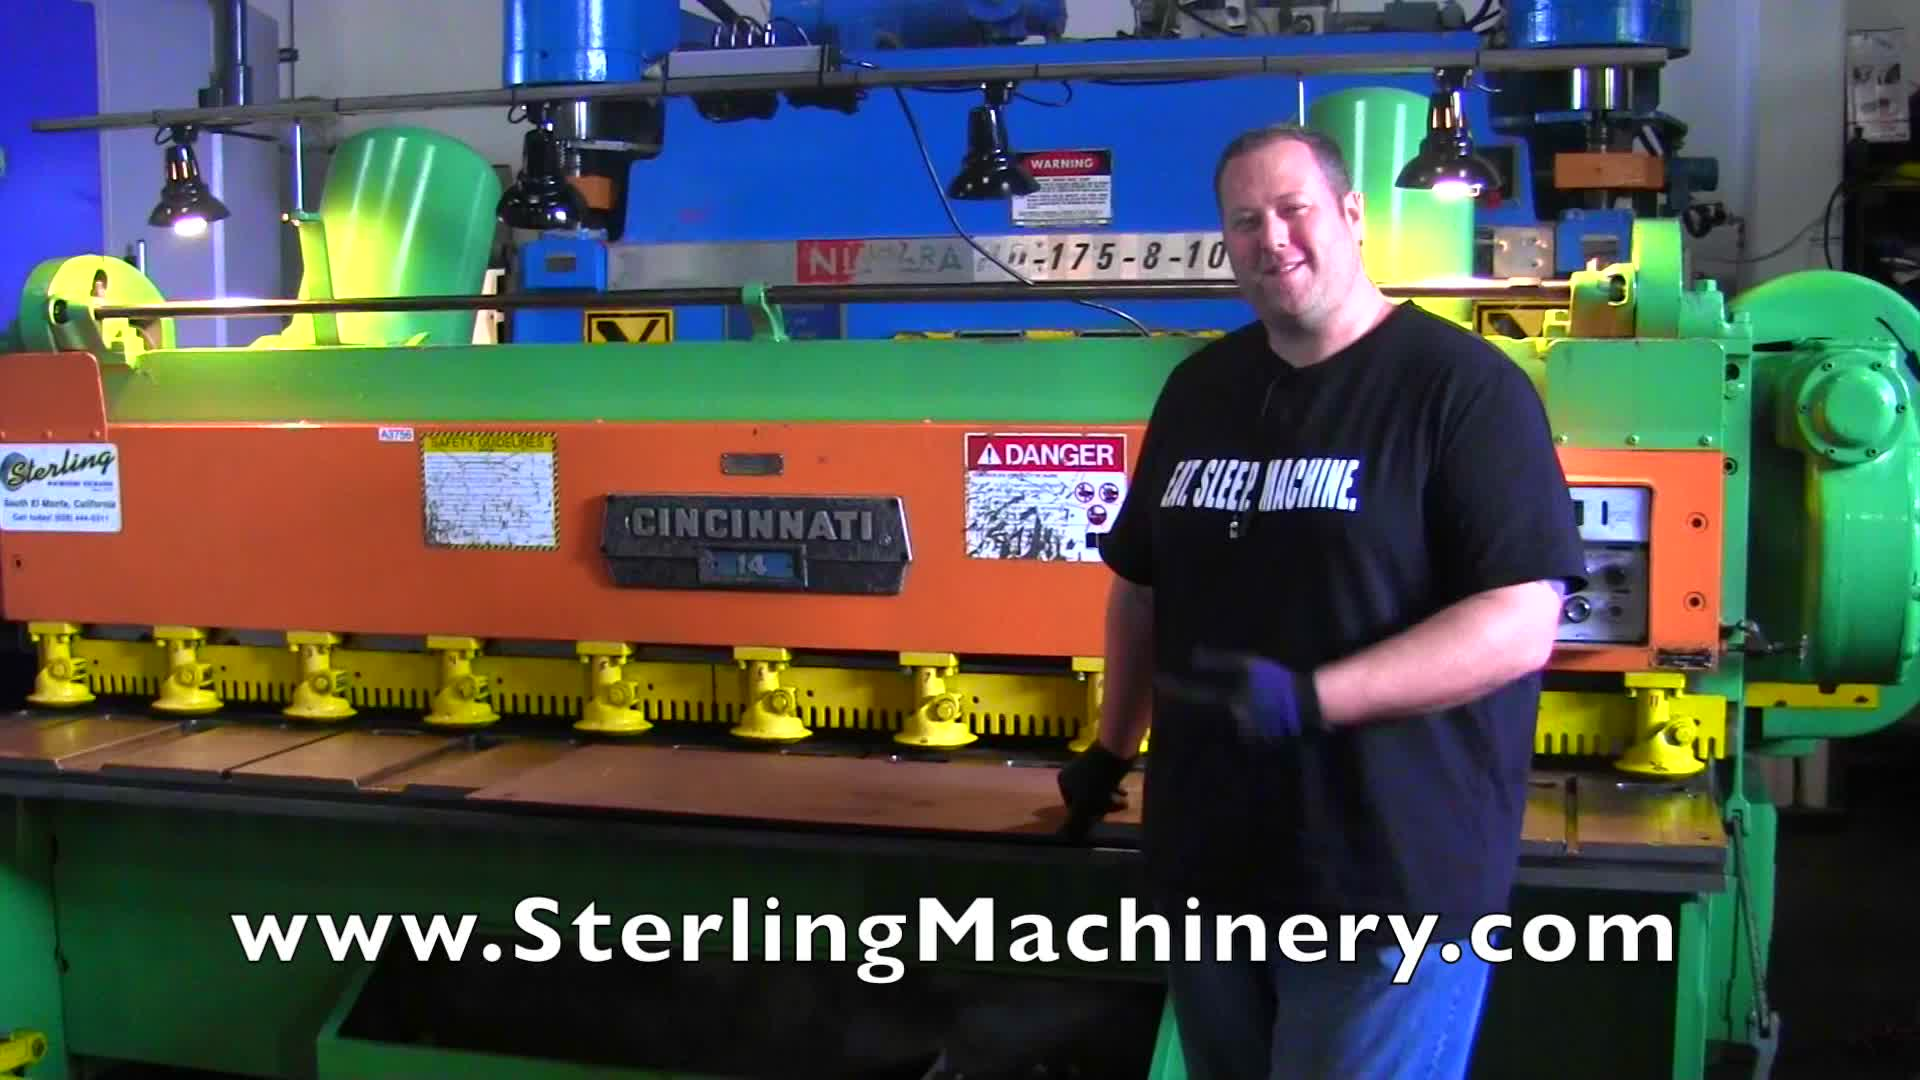 Machinery Videos of Dealer Machine Tools Showing Used Lathe, Milling on